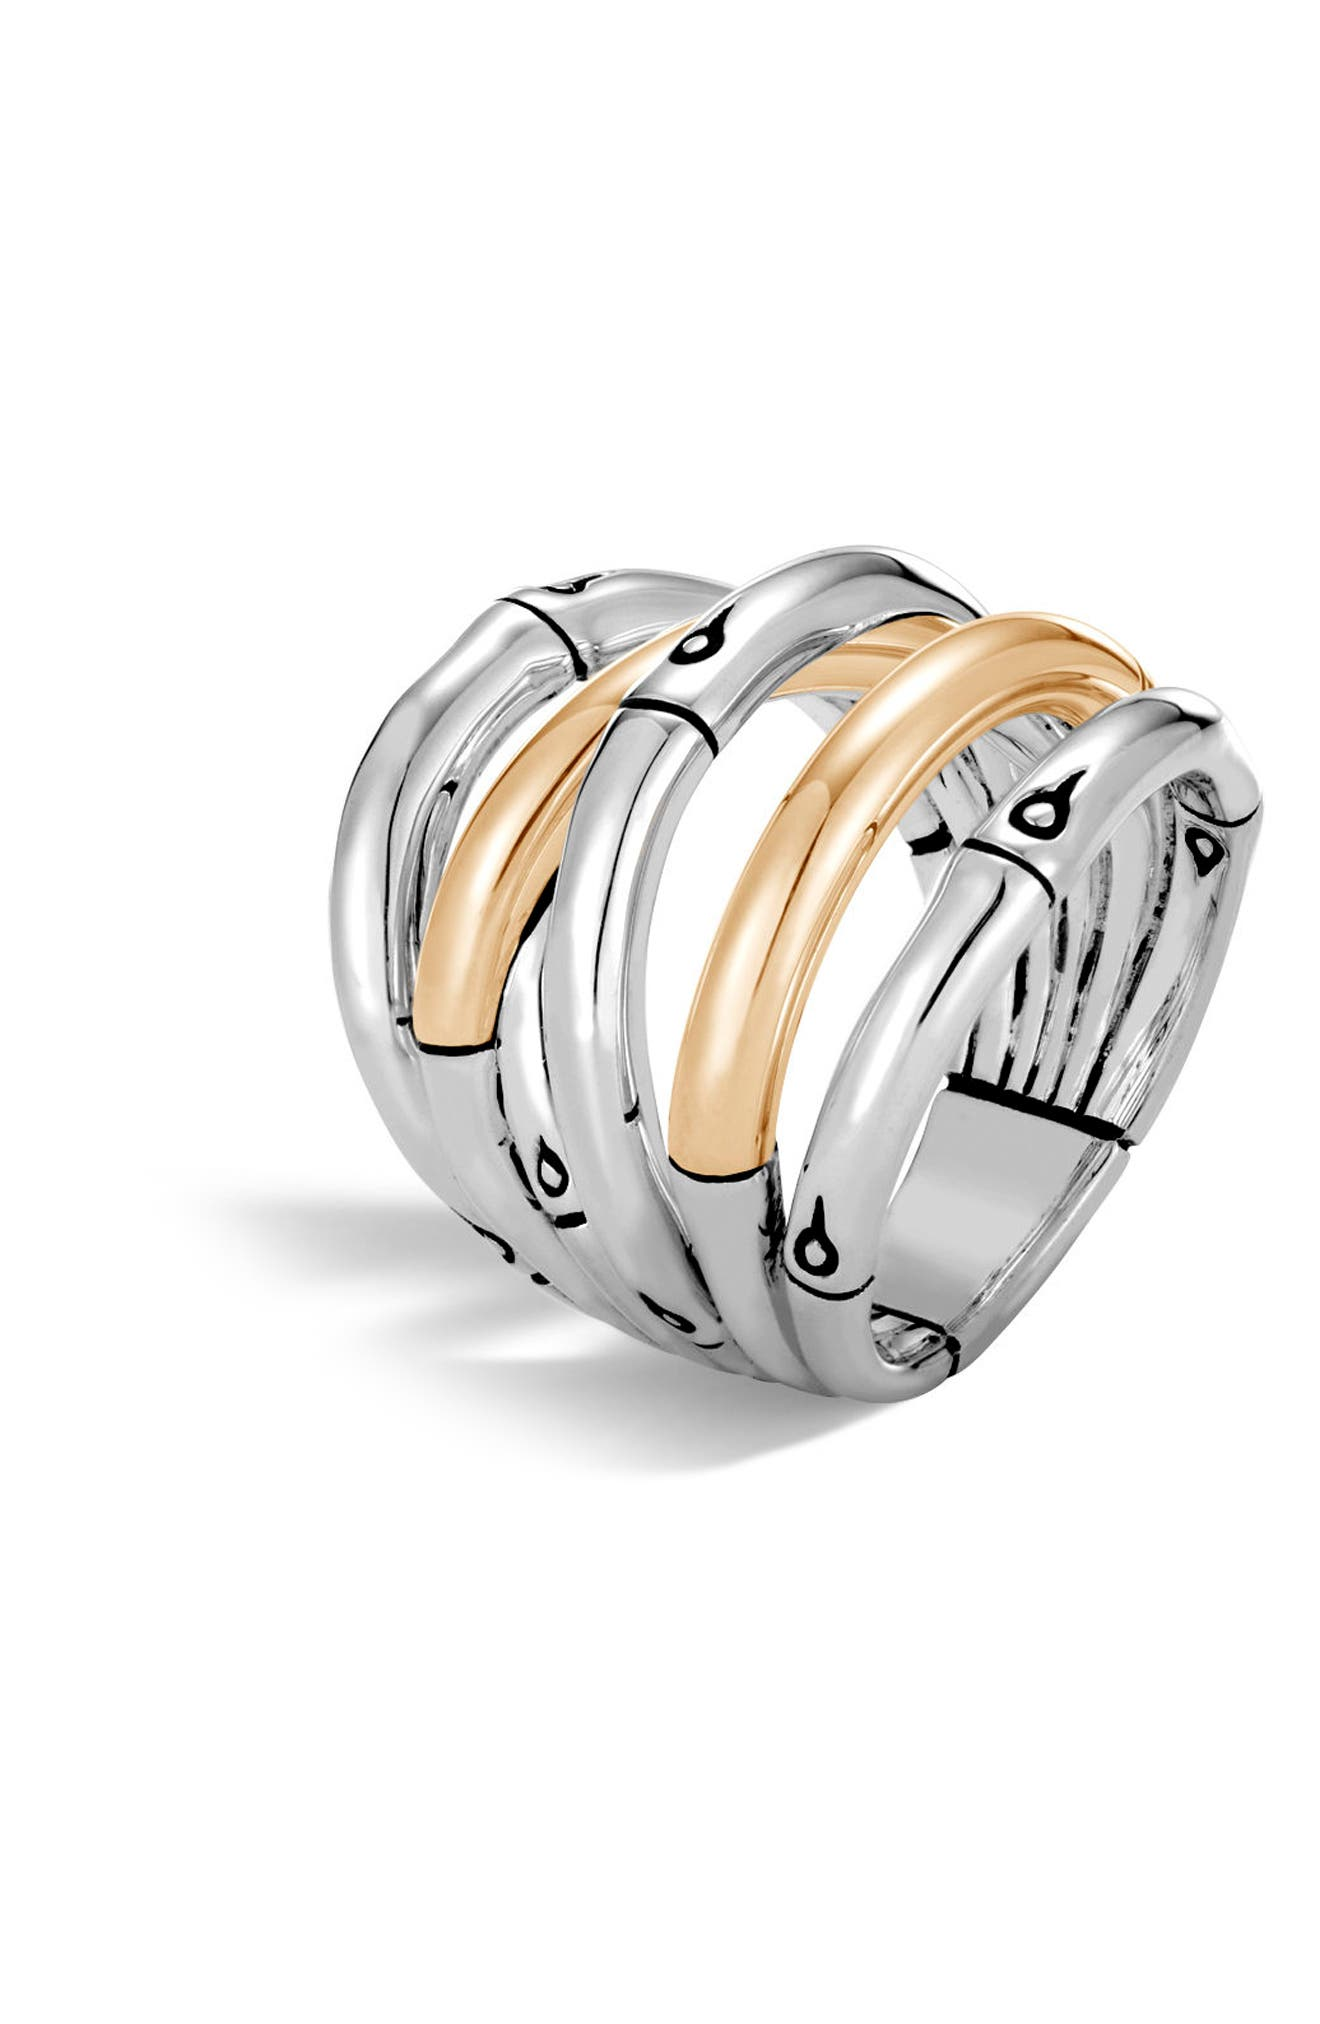 Bamboo 18-Karat Gold Sterling Silver Stack Ring,                         Main,                         color, Silver/ Gold